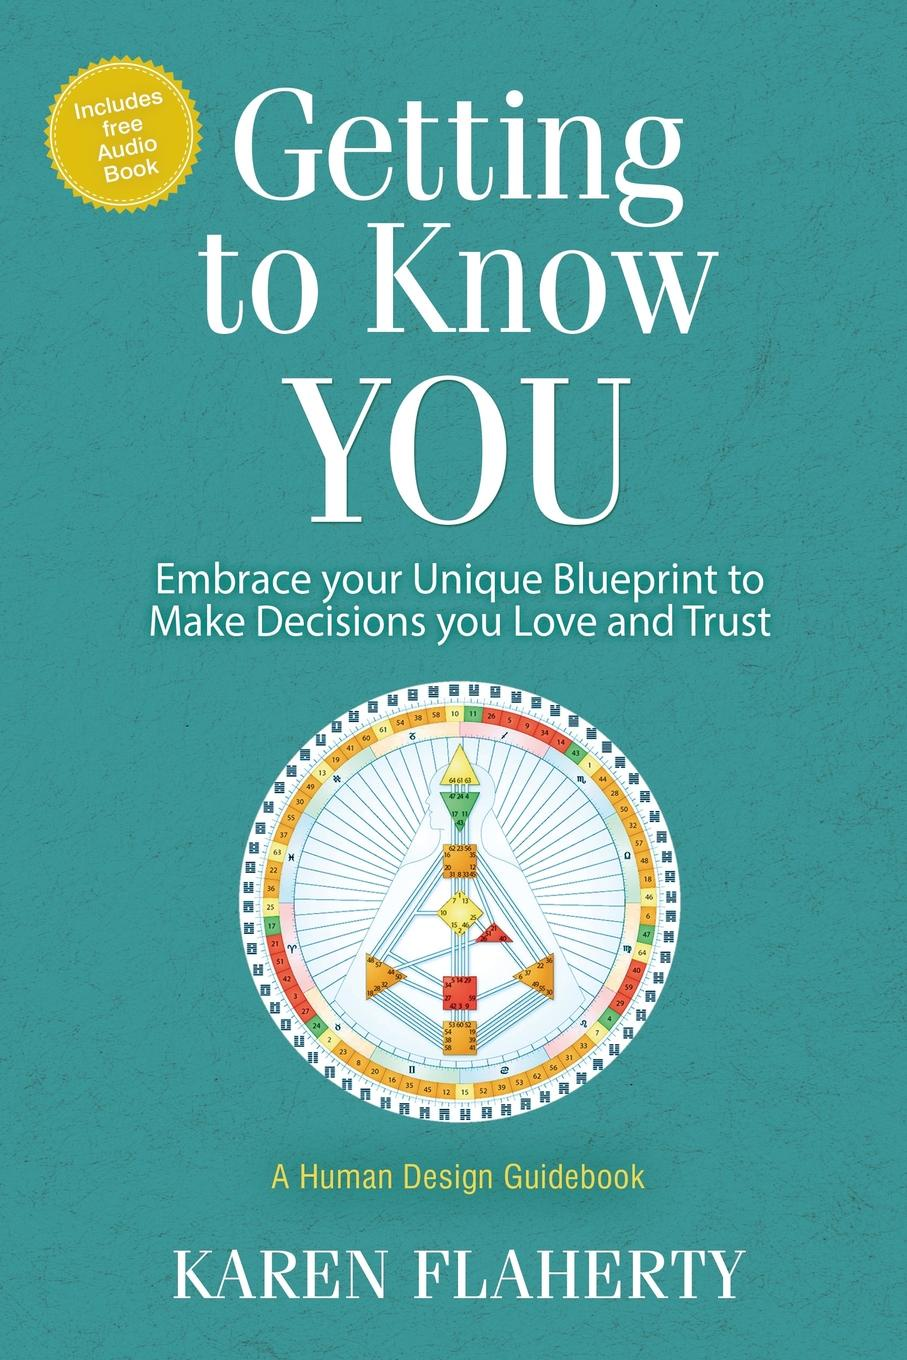 цены на Karen Flaherty Getting to Know YOU. Embrace Your Unique Blueprint to Make Decisions you Love and Trust - A Human Design Guidebook  в интернет-магазинах